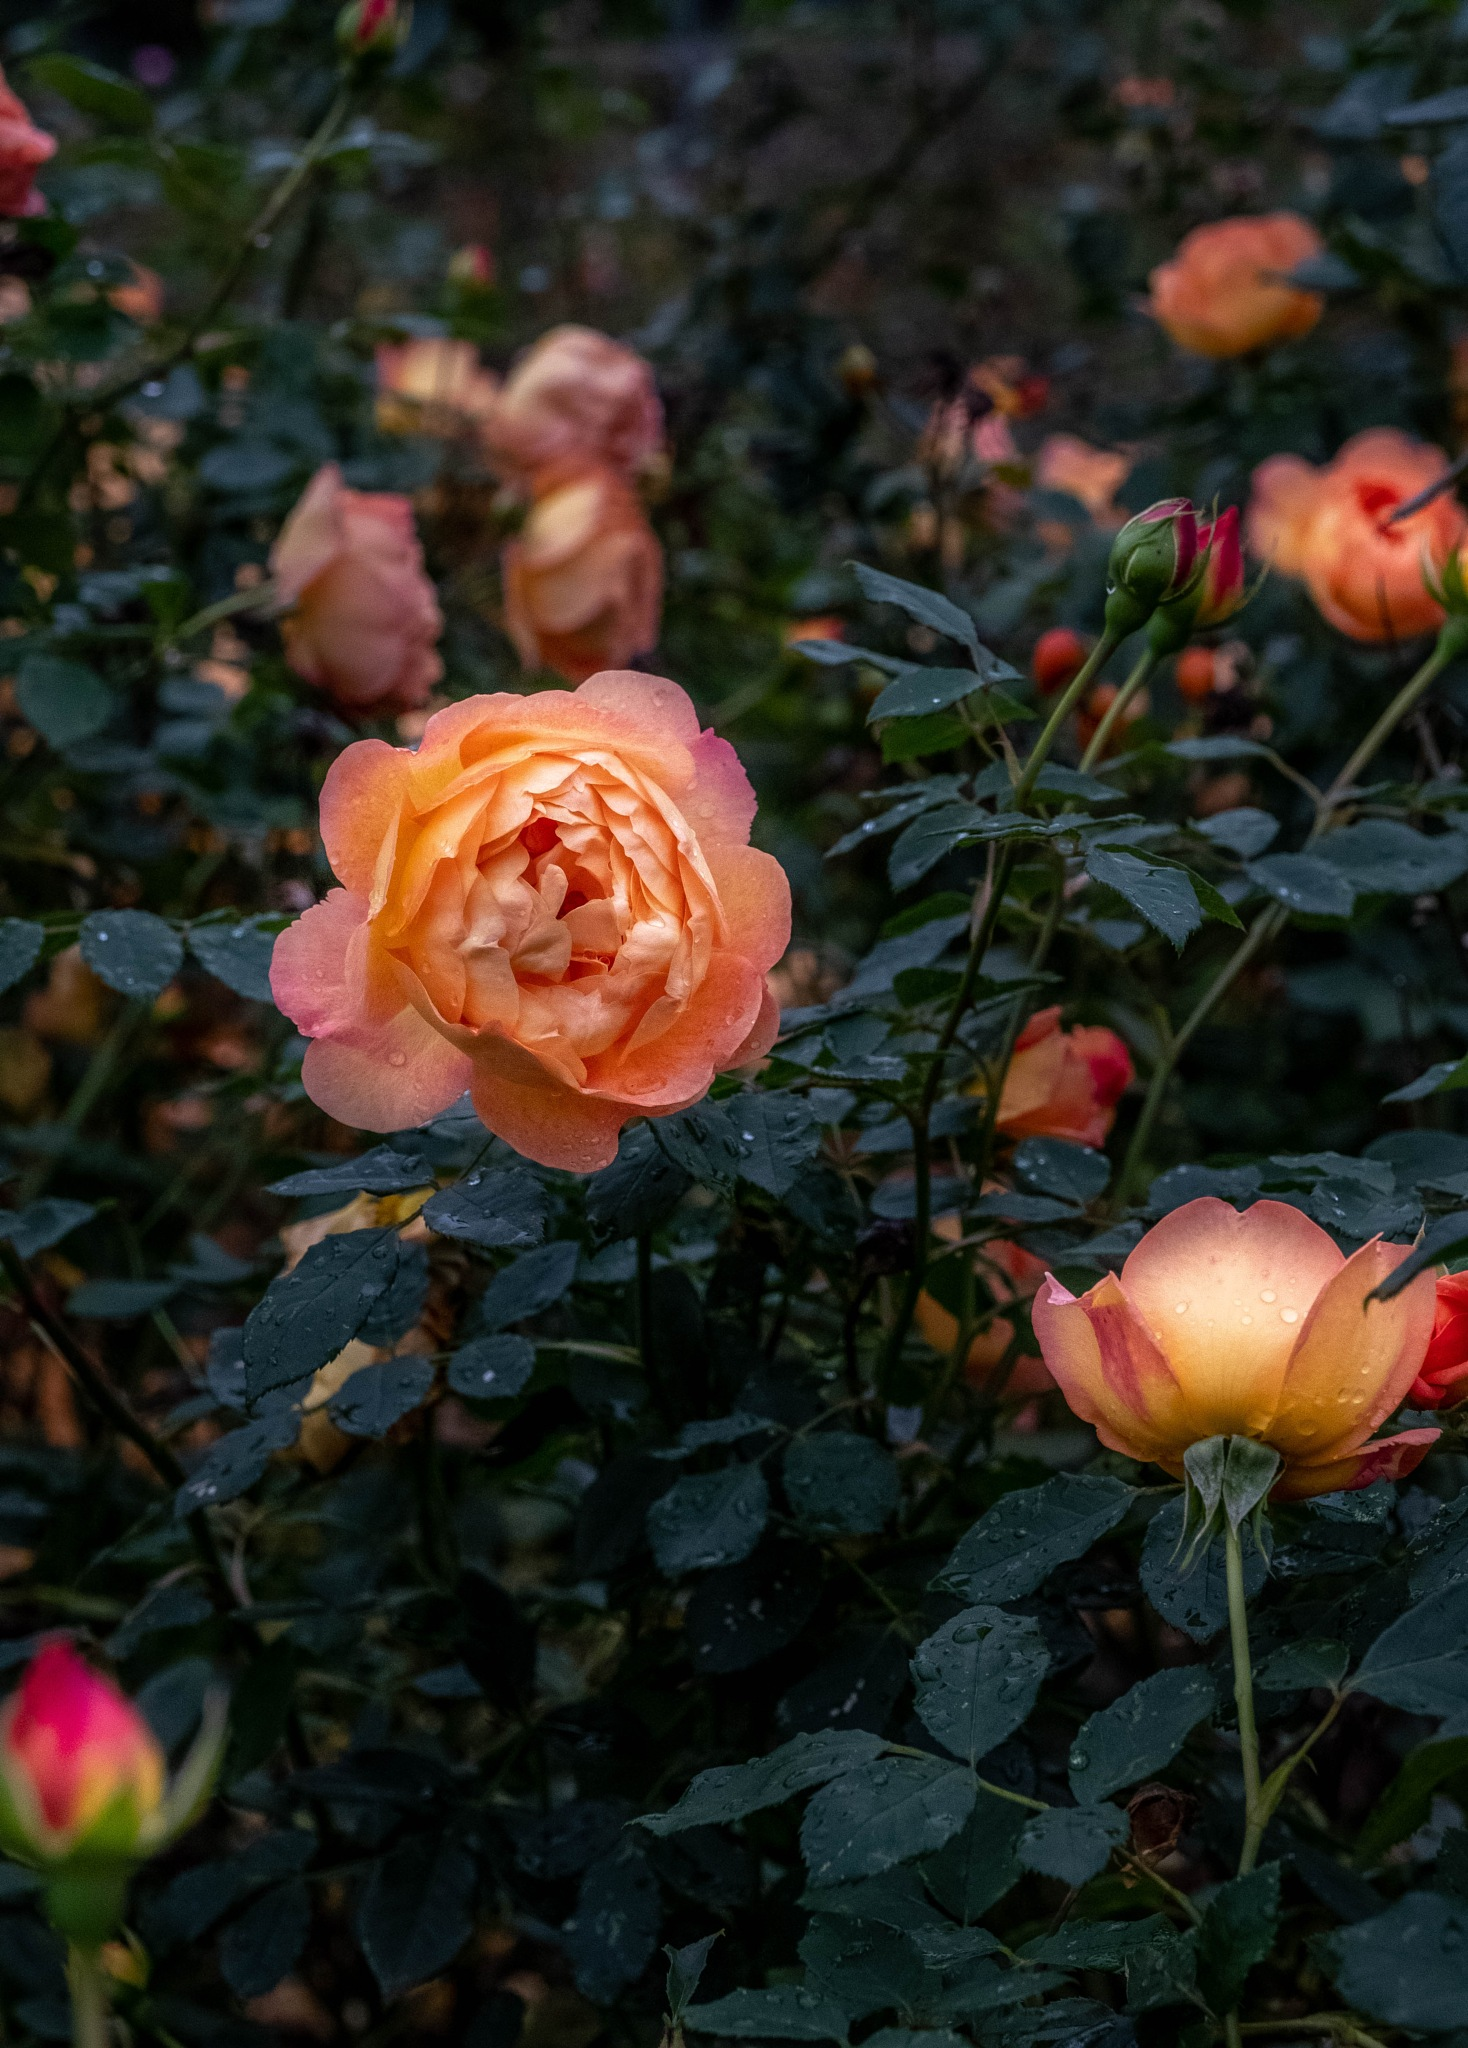 Roses 2 by Barry